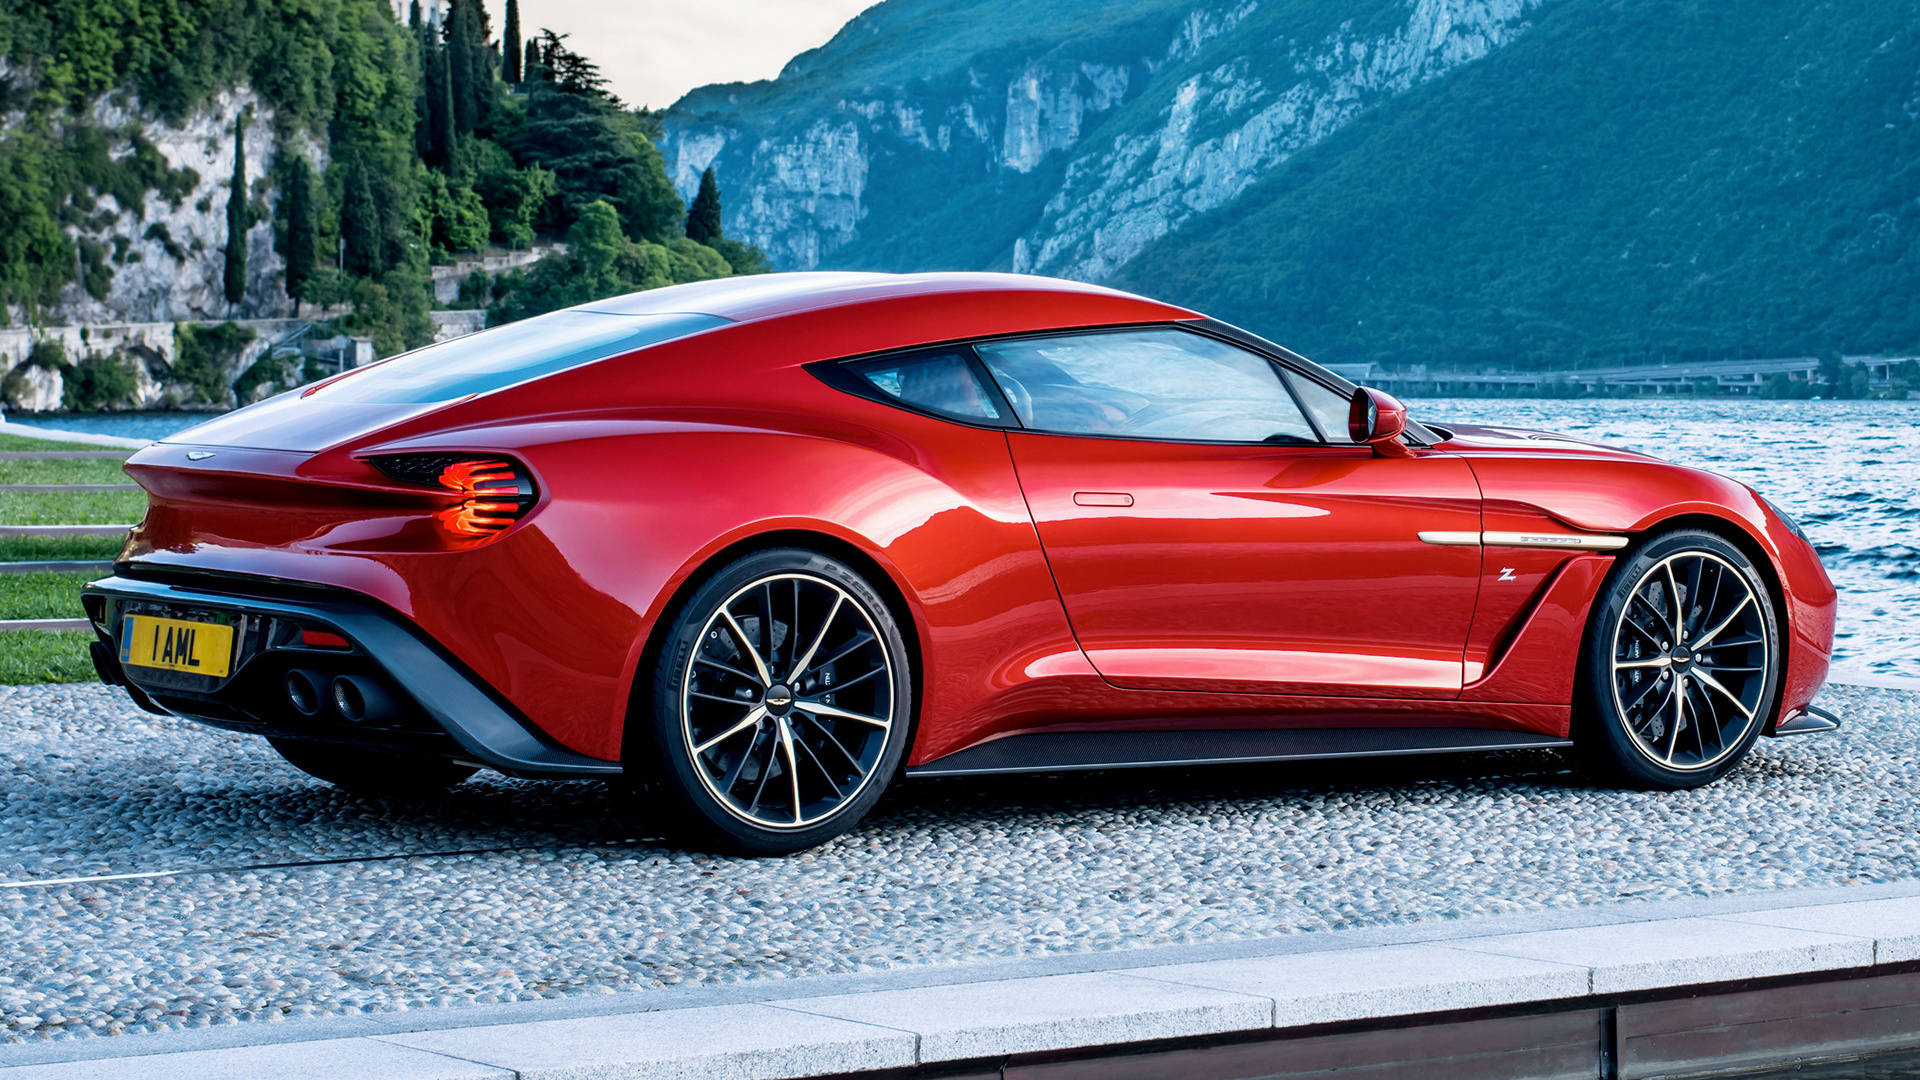 2016 Aston Martin Vanquish Zagato   Wallpapers and HD Images Car 1920x1080